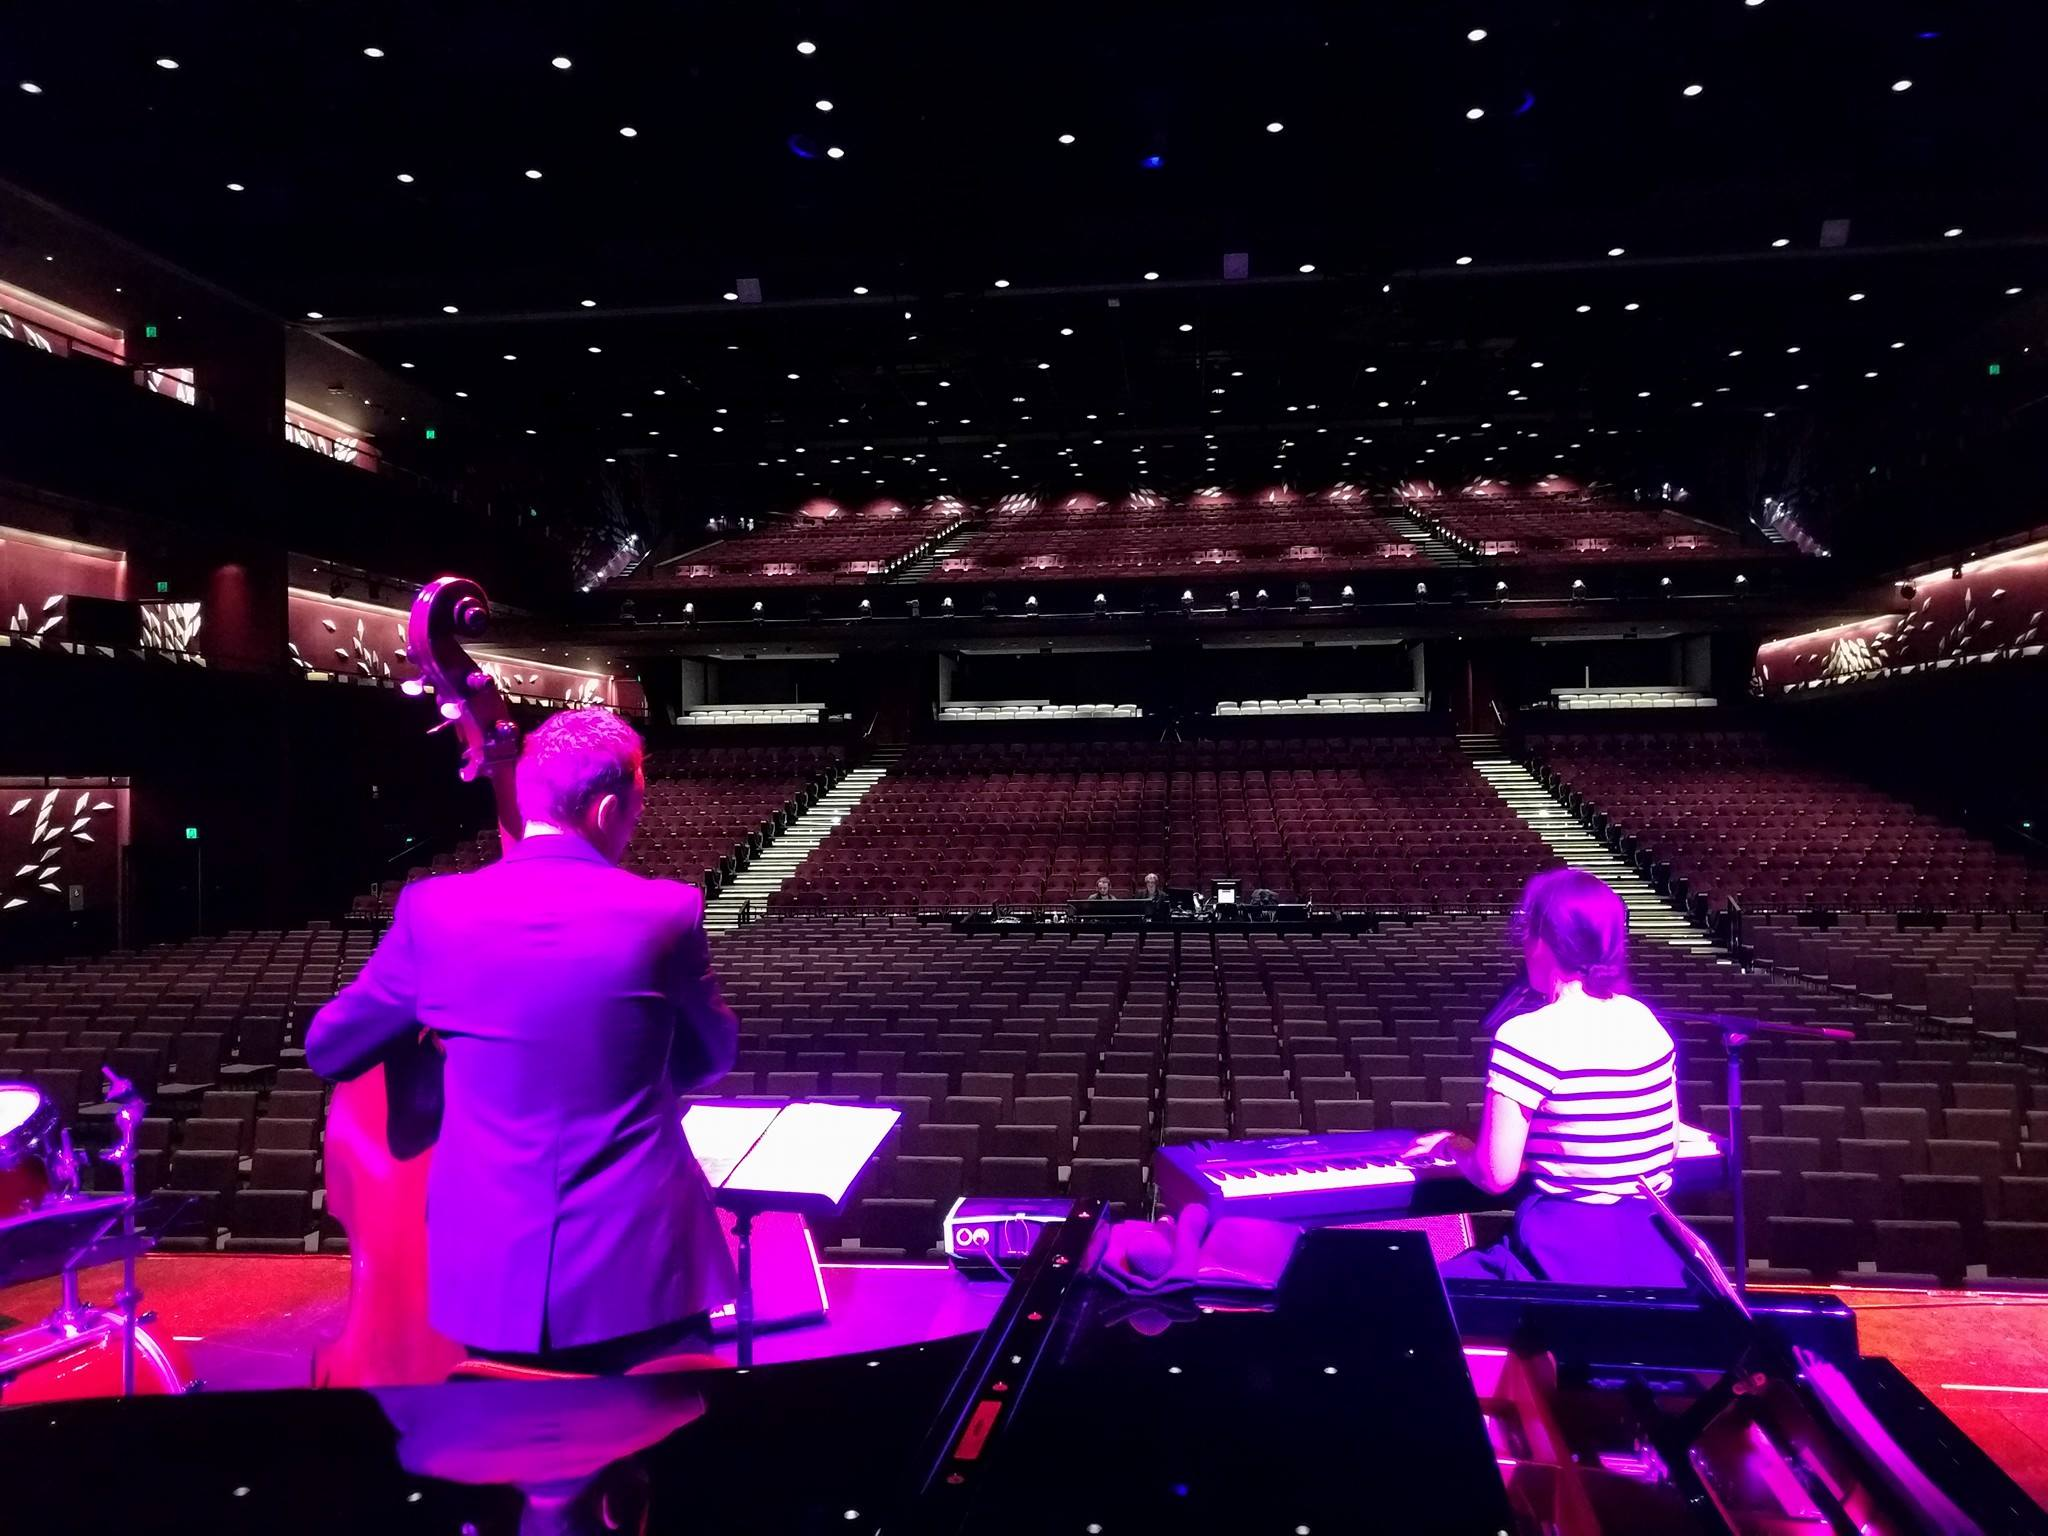 Frances Madden soundchecks at the Star, ready to open for Dionne Warwick